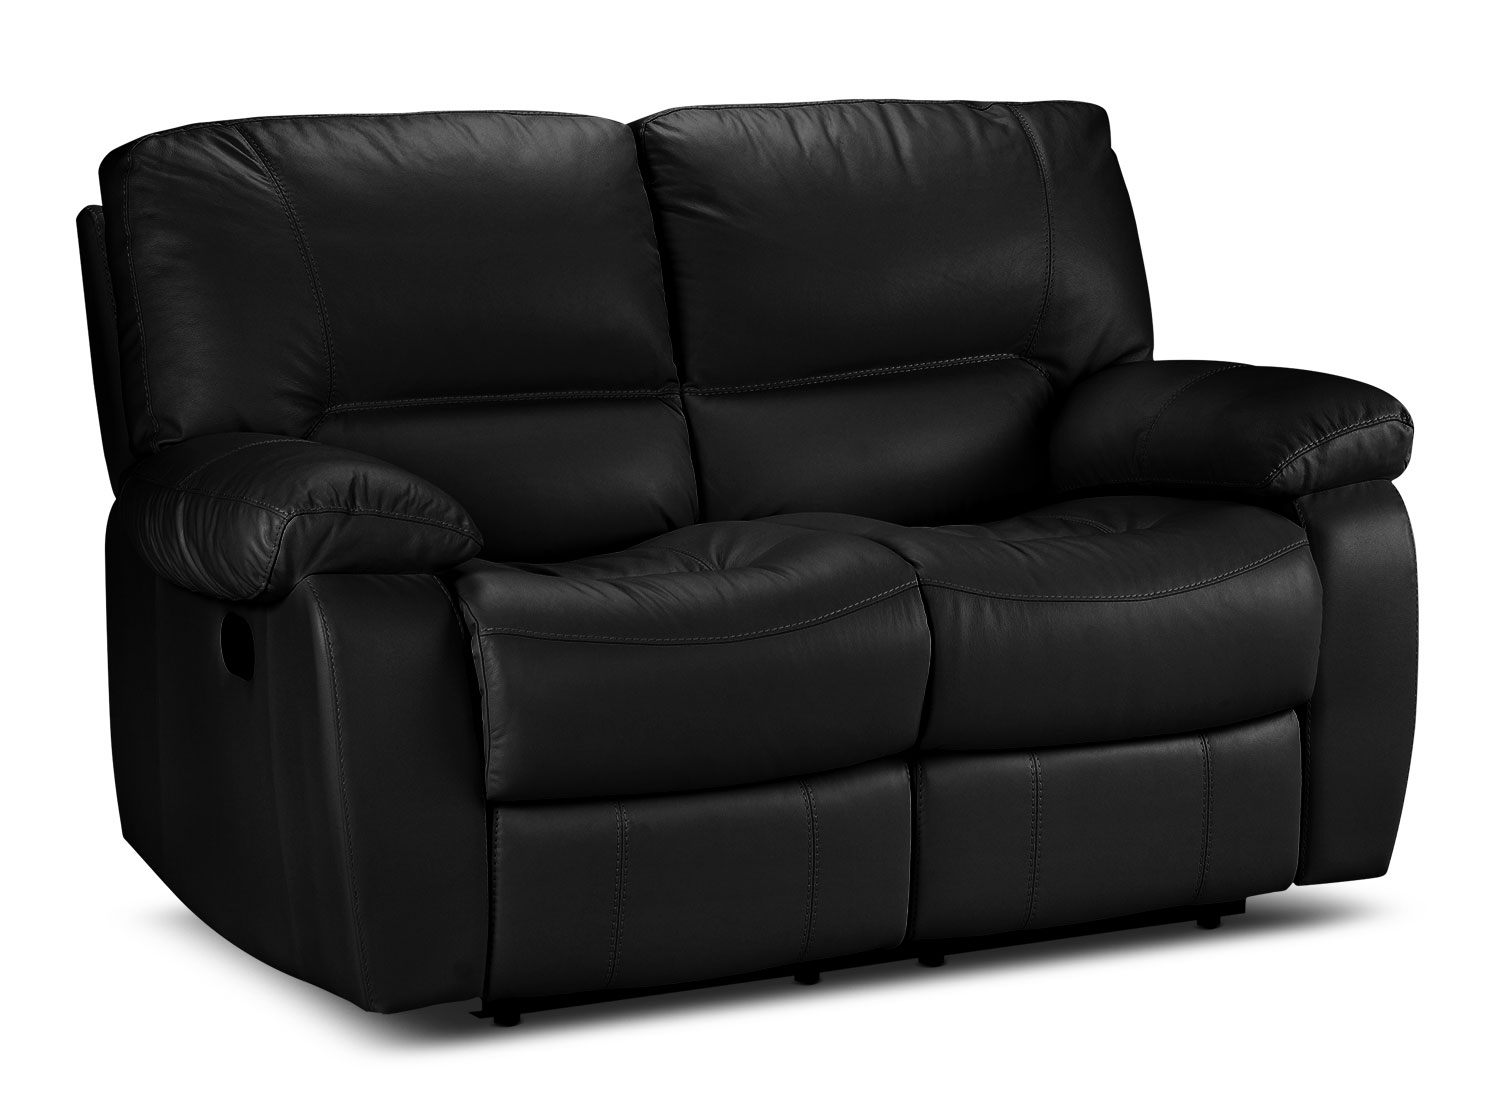 Living Room Furniture - Piermont Reclining Loveseat - Black